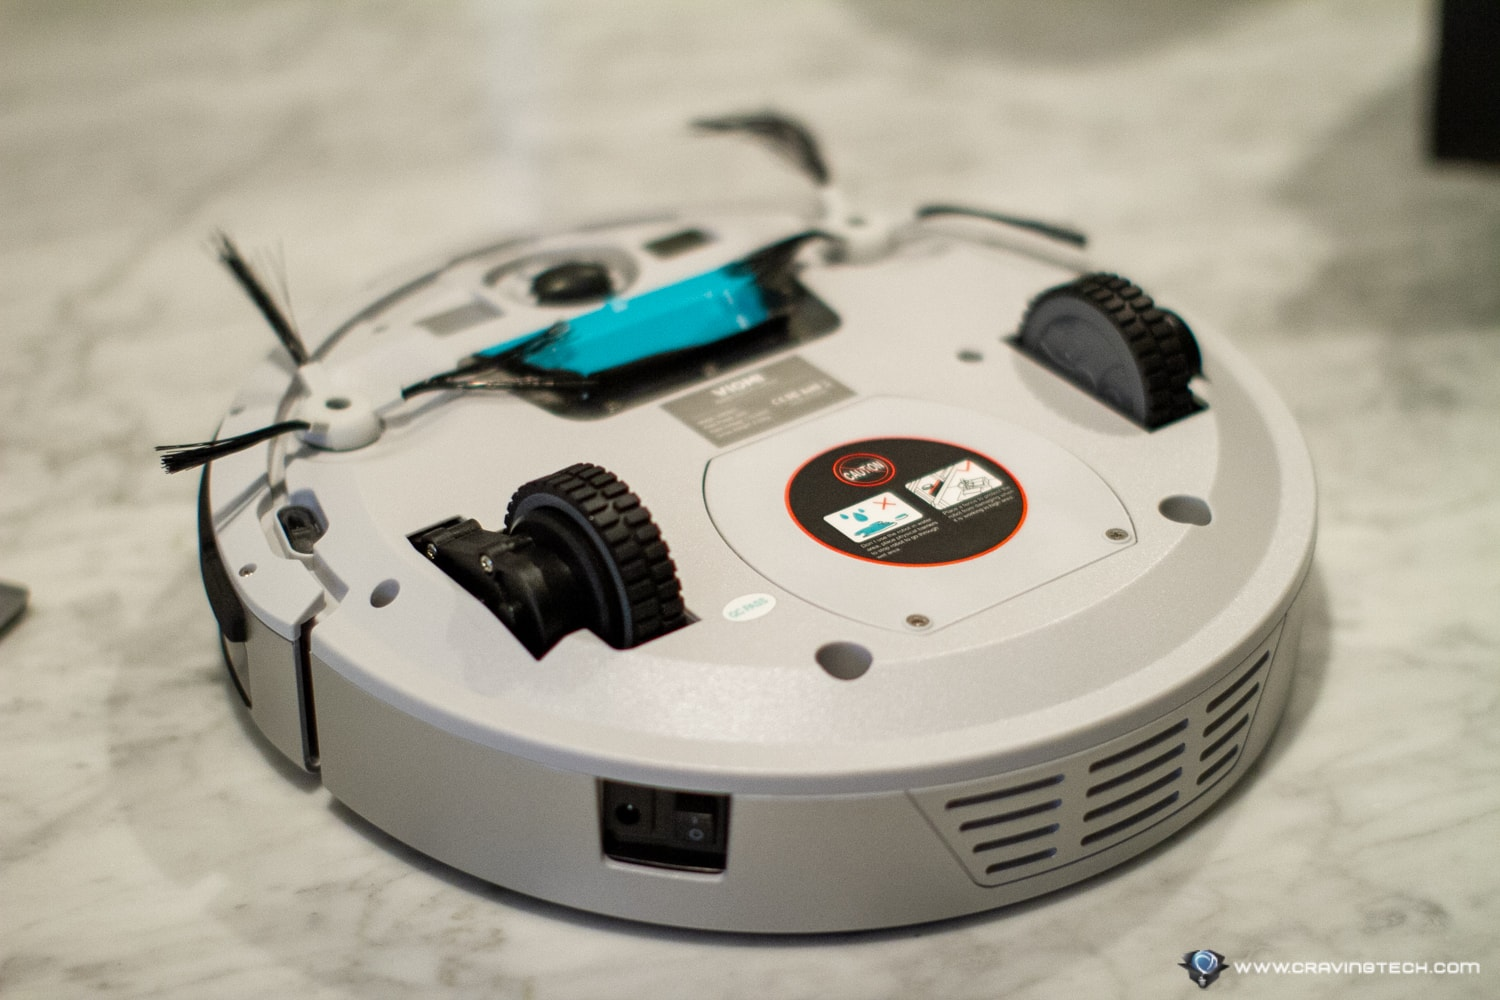 Viomi 3 Vacuum and Mop Robot